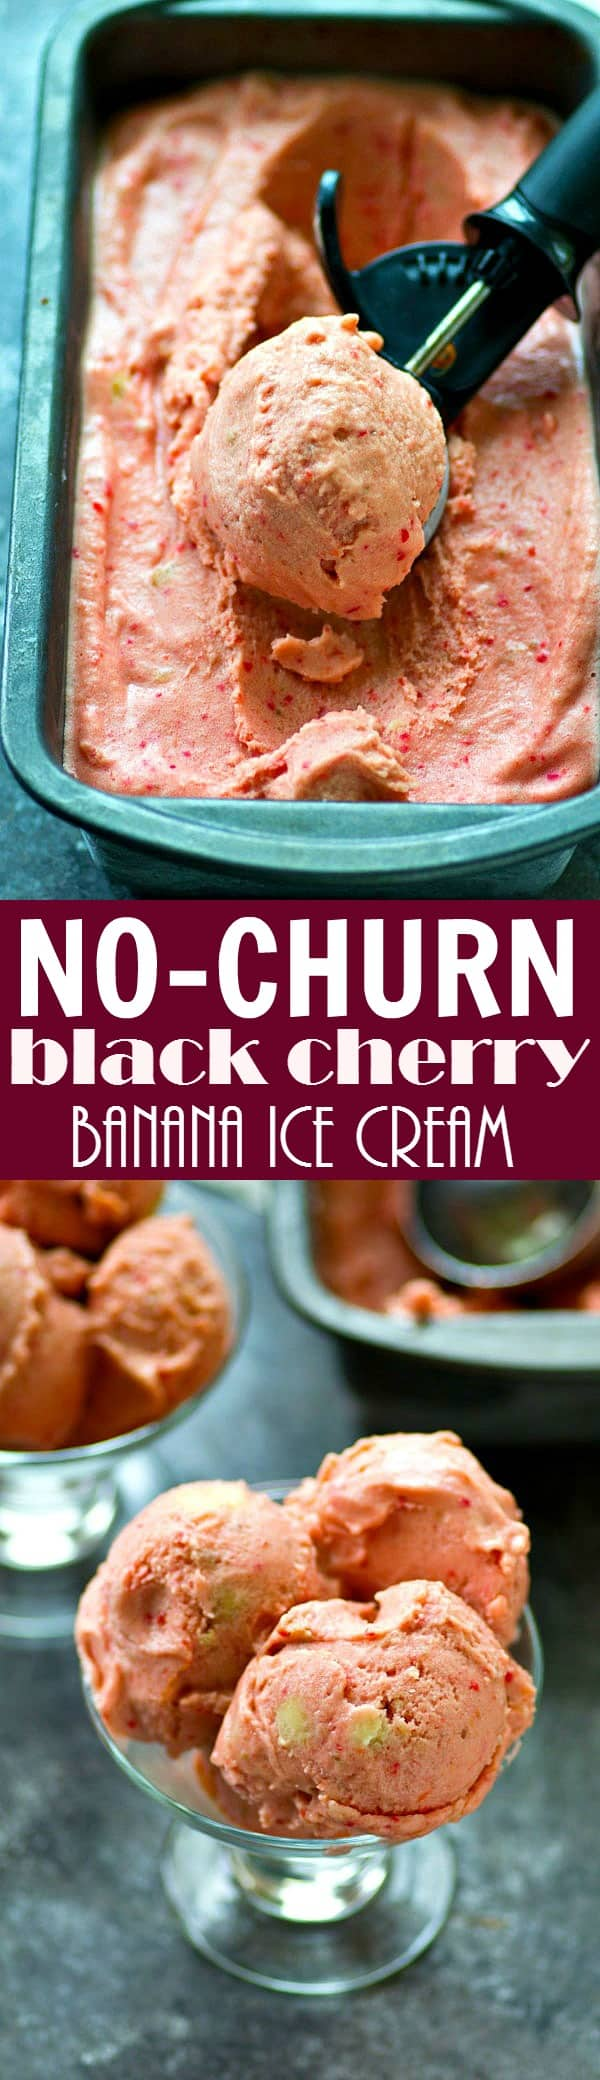 This no-churn black cherry banana ice cream blends up in only minutes and then the freezer takes care of the rest! The easiest ice cream to make this summer when you get that craving.